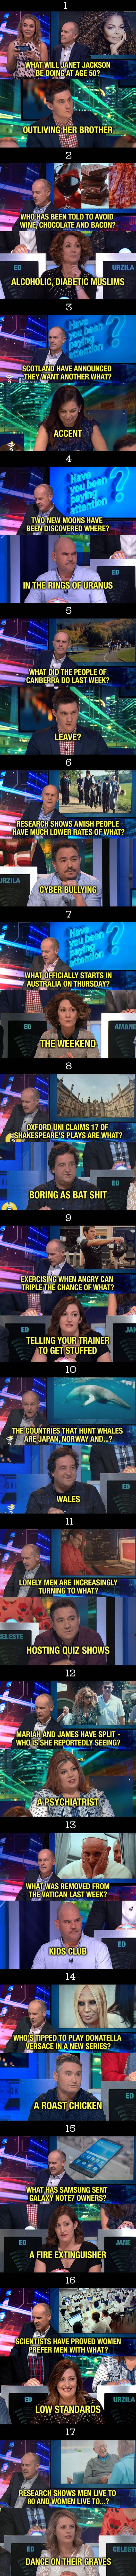 "From game show ""Have You Been Paying Attention"" - 9GAG"